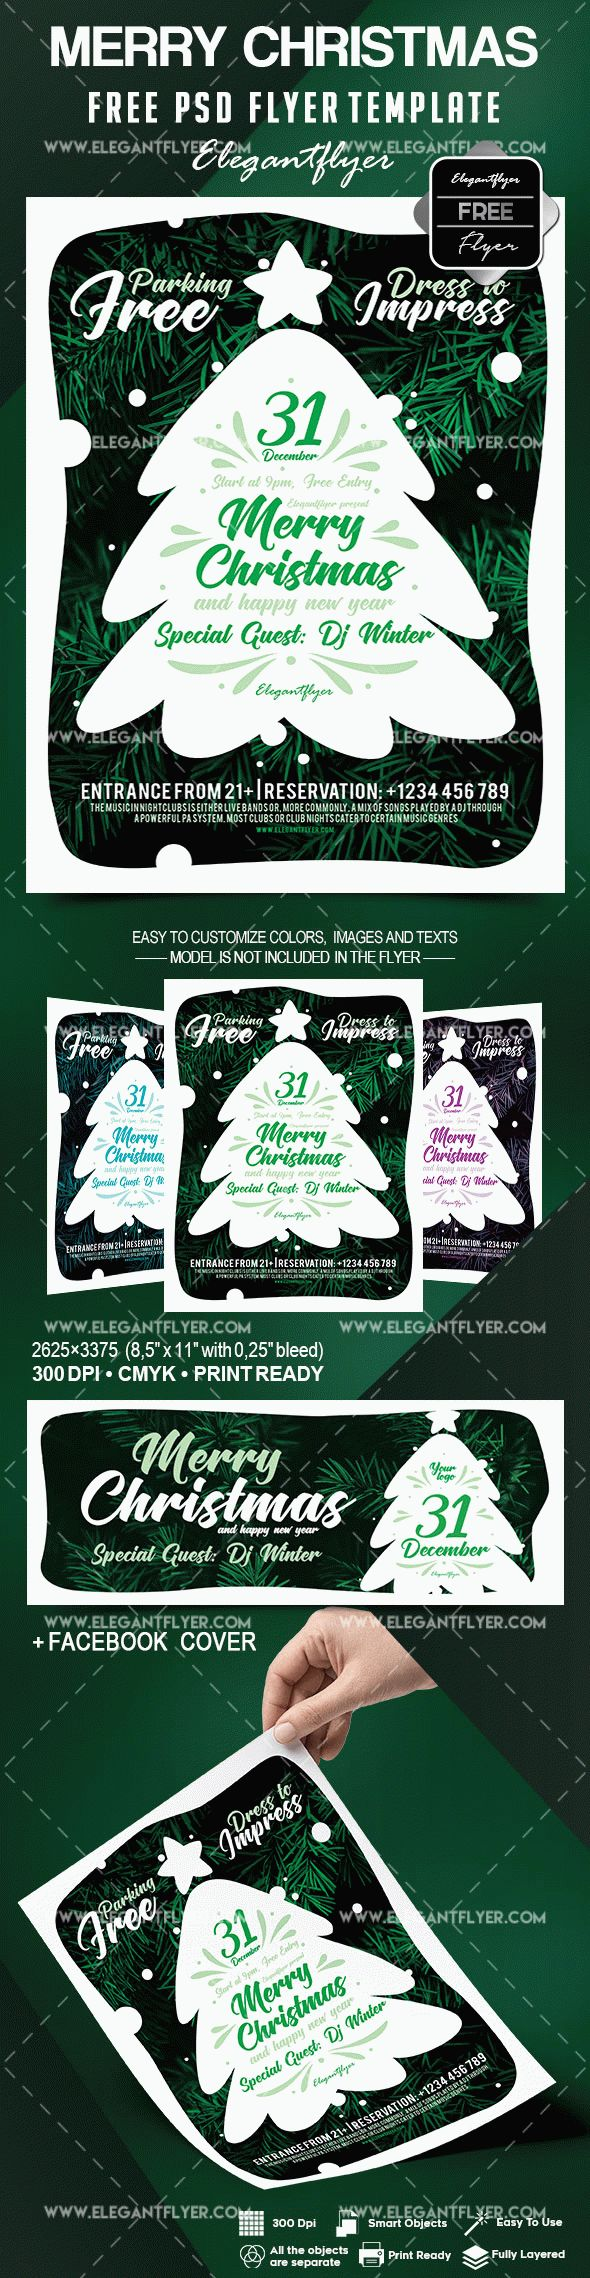 Free Merry Christmas Flyer Template